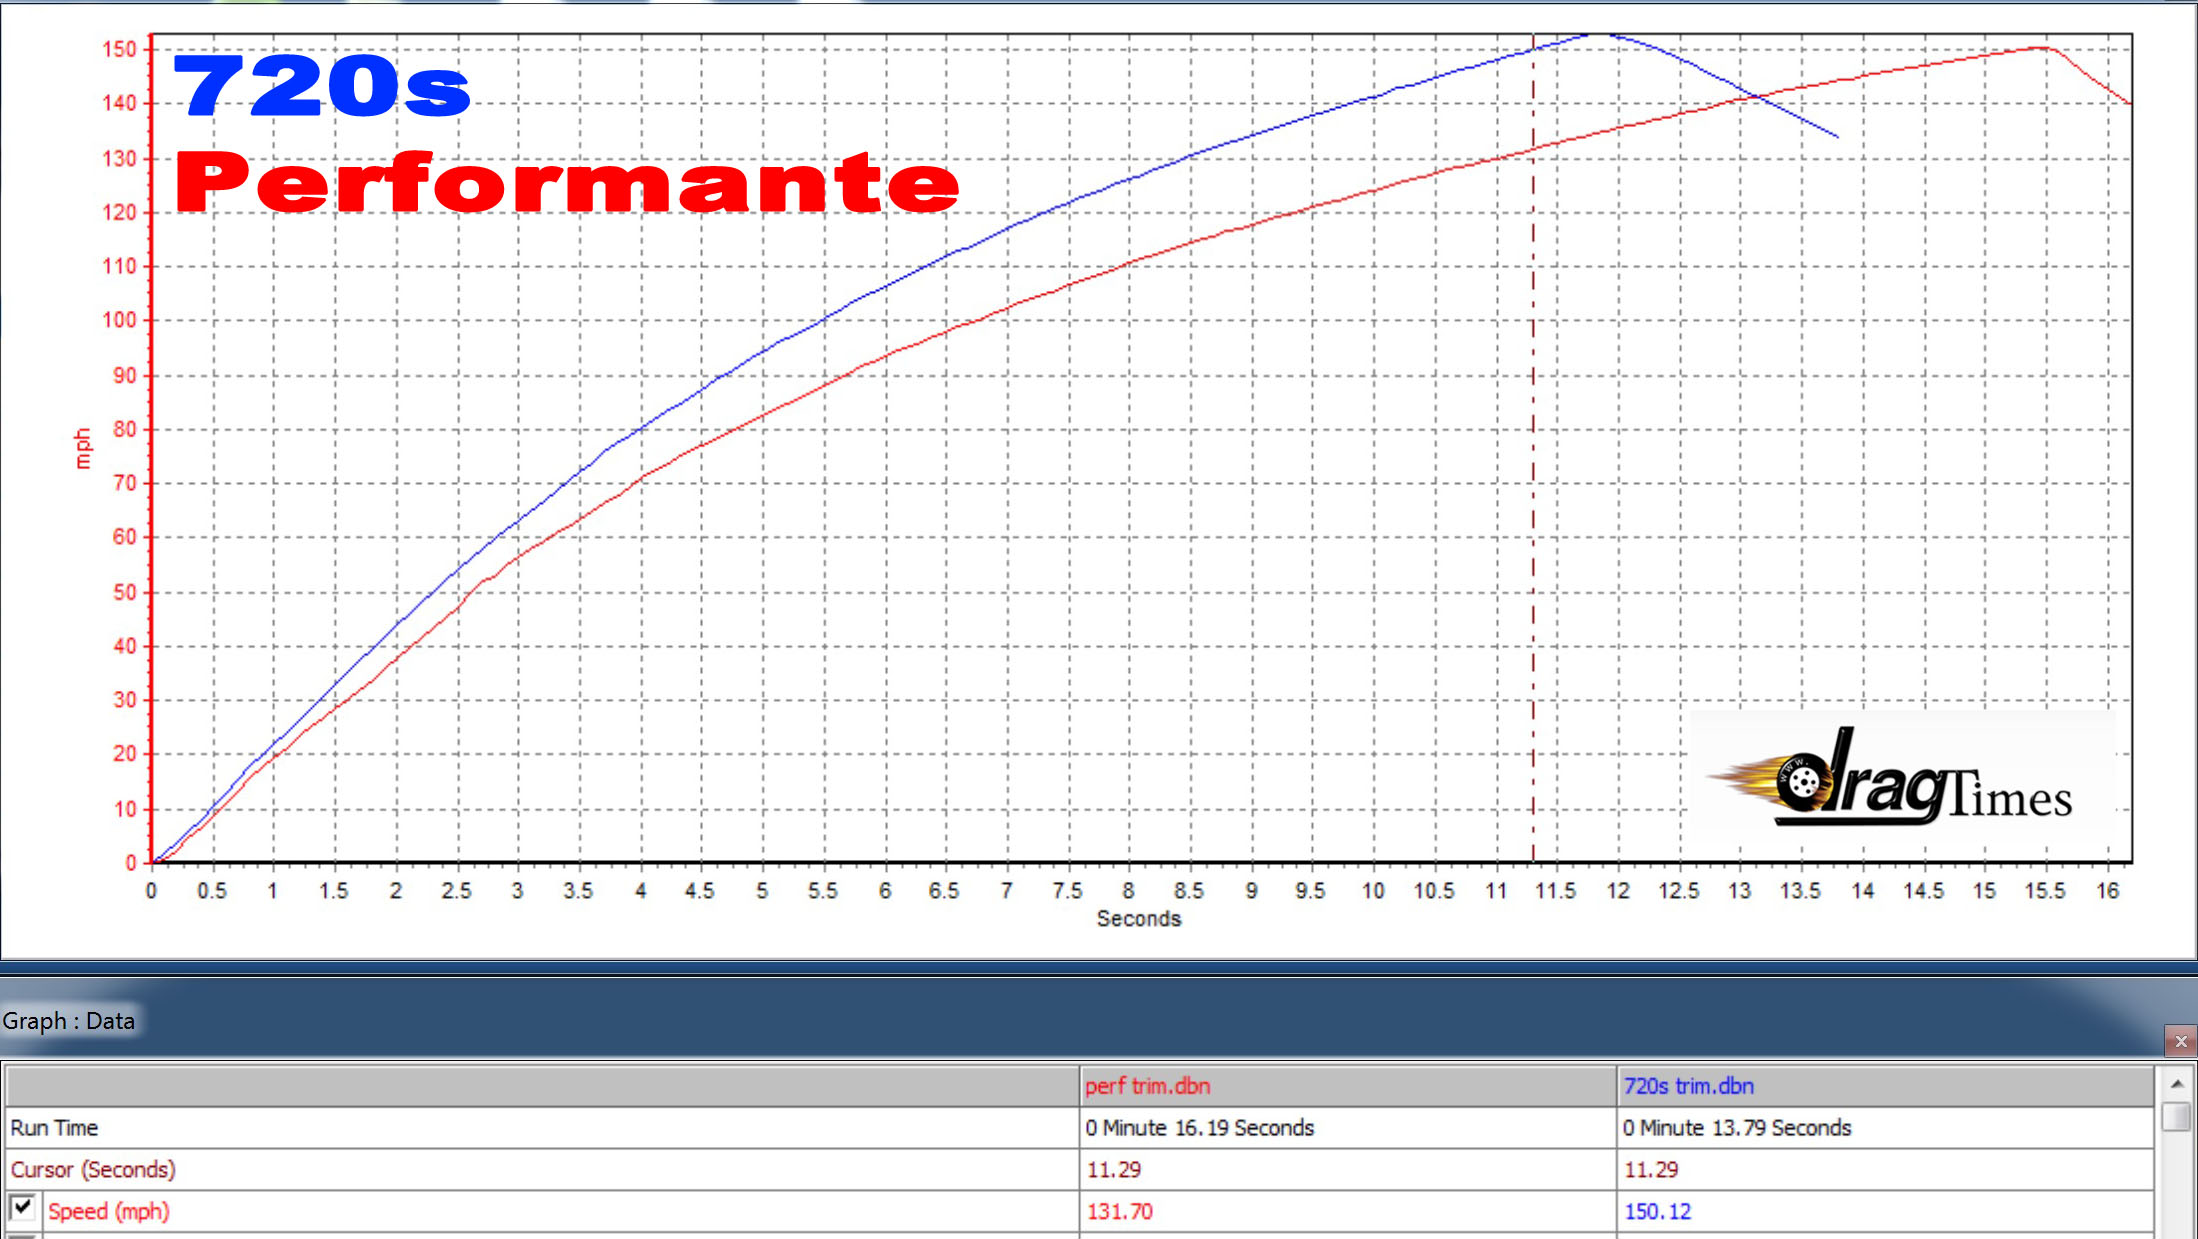 McLaren 720s vs Huracan Performante VBOX Graph